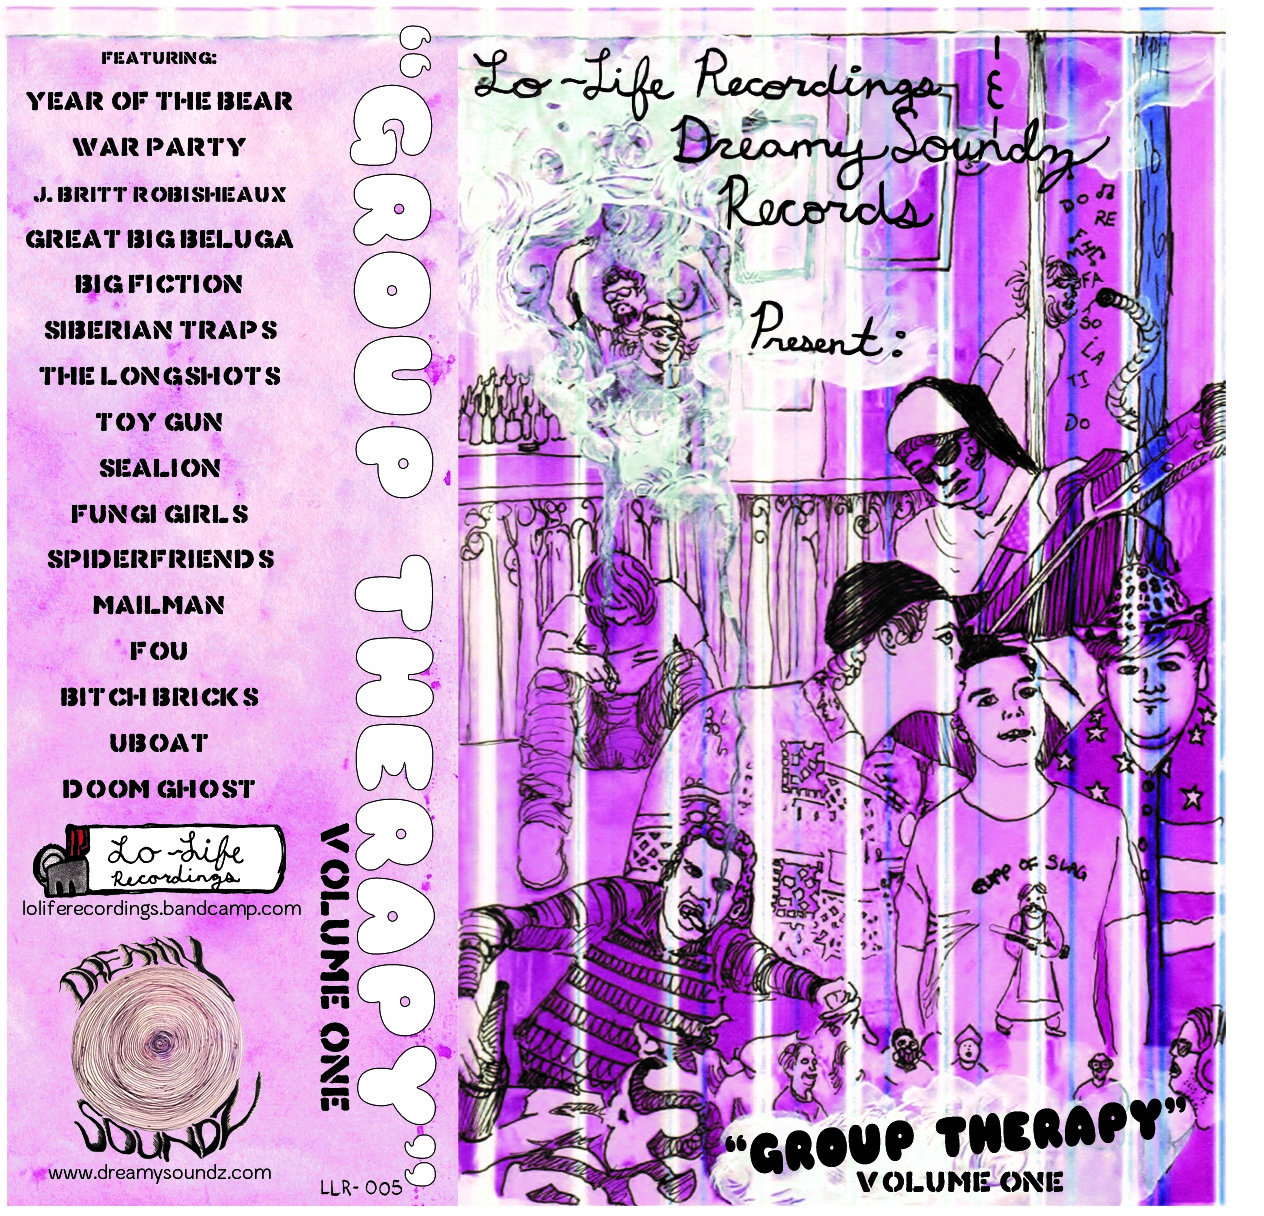 Fungi Girls, The Longshots, War Party, SpiderFriends, and Siberian Traps are just some of the local underground bands to contribute to the inaugural compilation album by Lo-Life Recordings and Dreamy Soundz Records, Group Therapy Vol. 1.